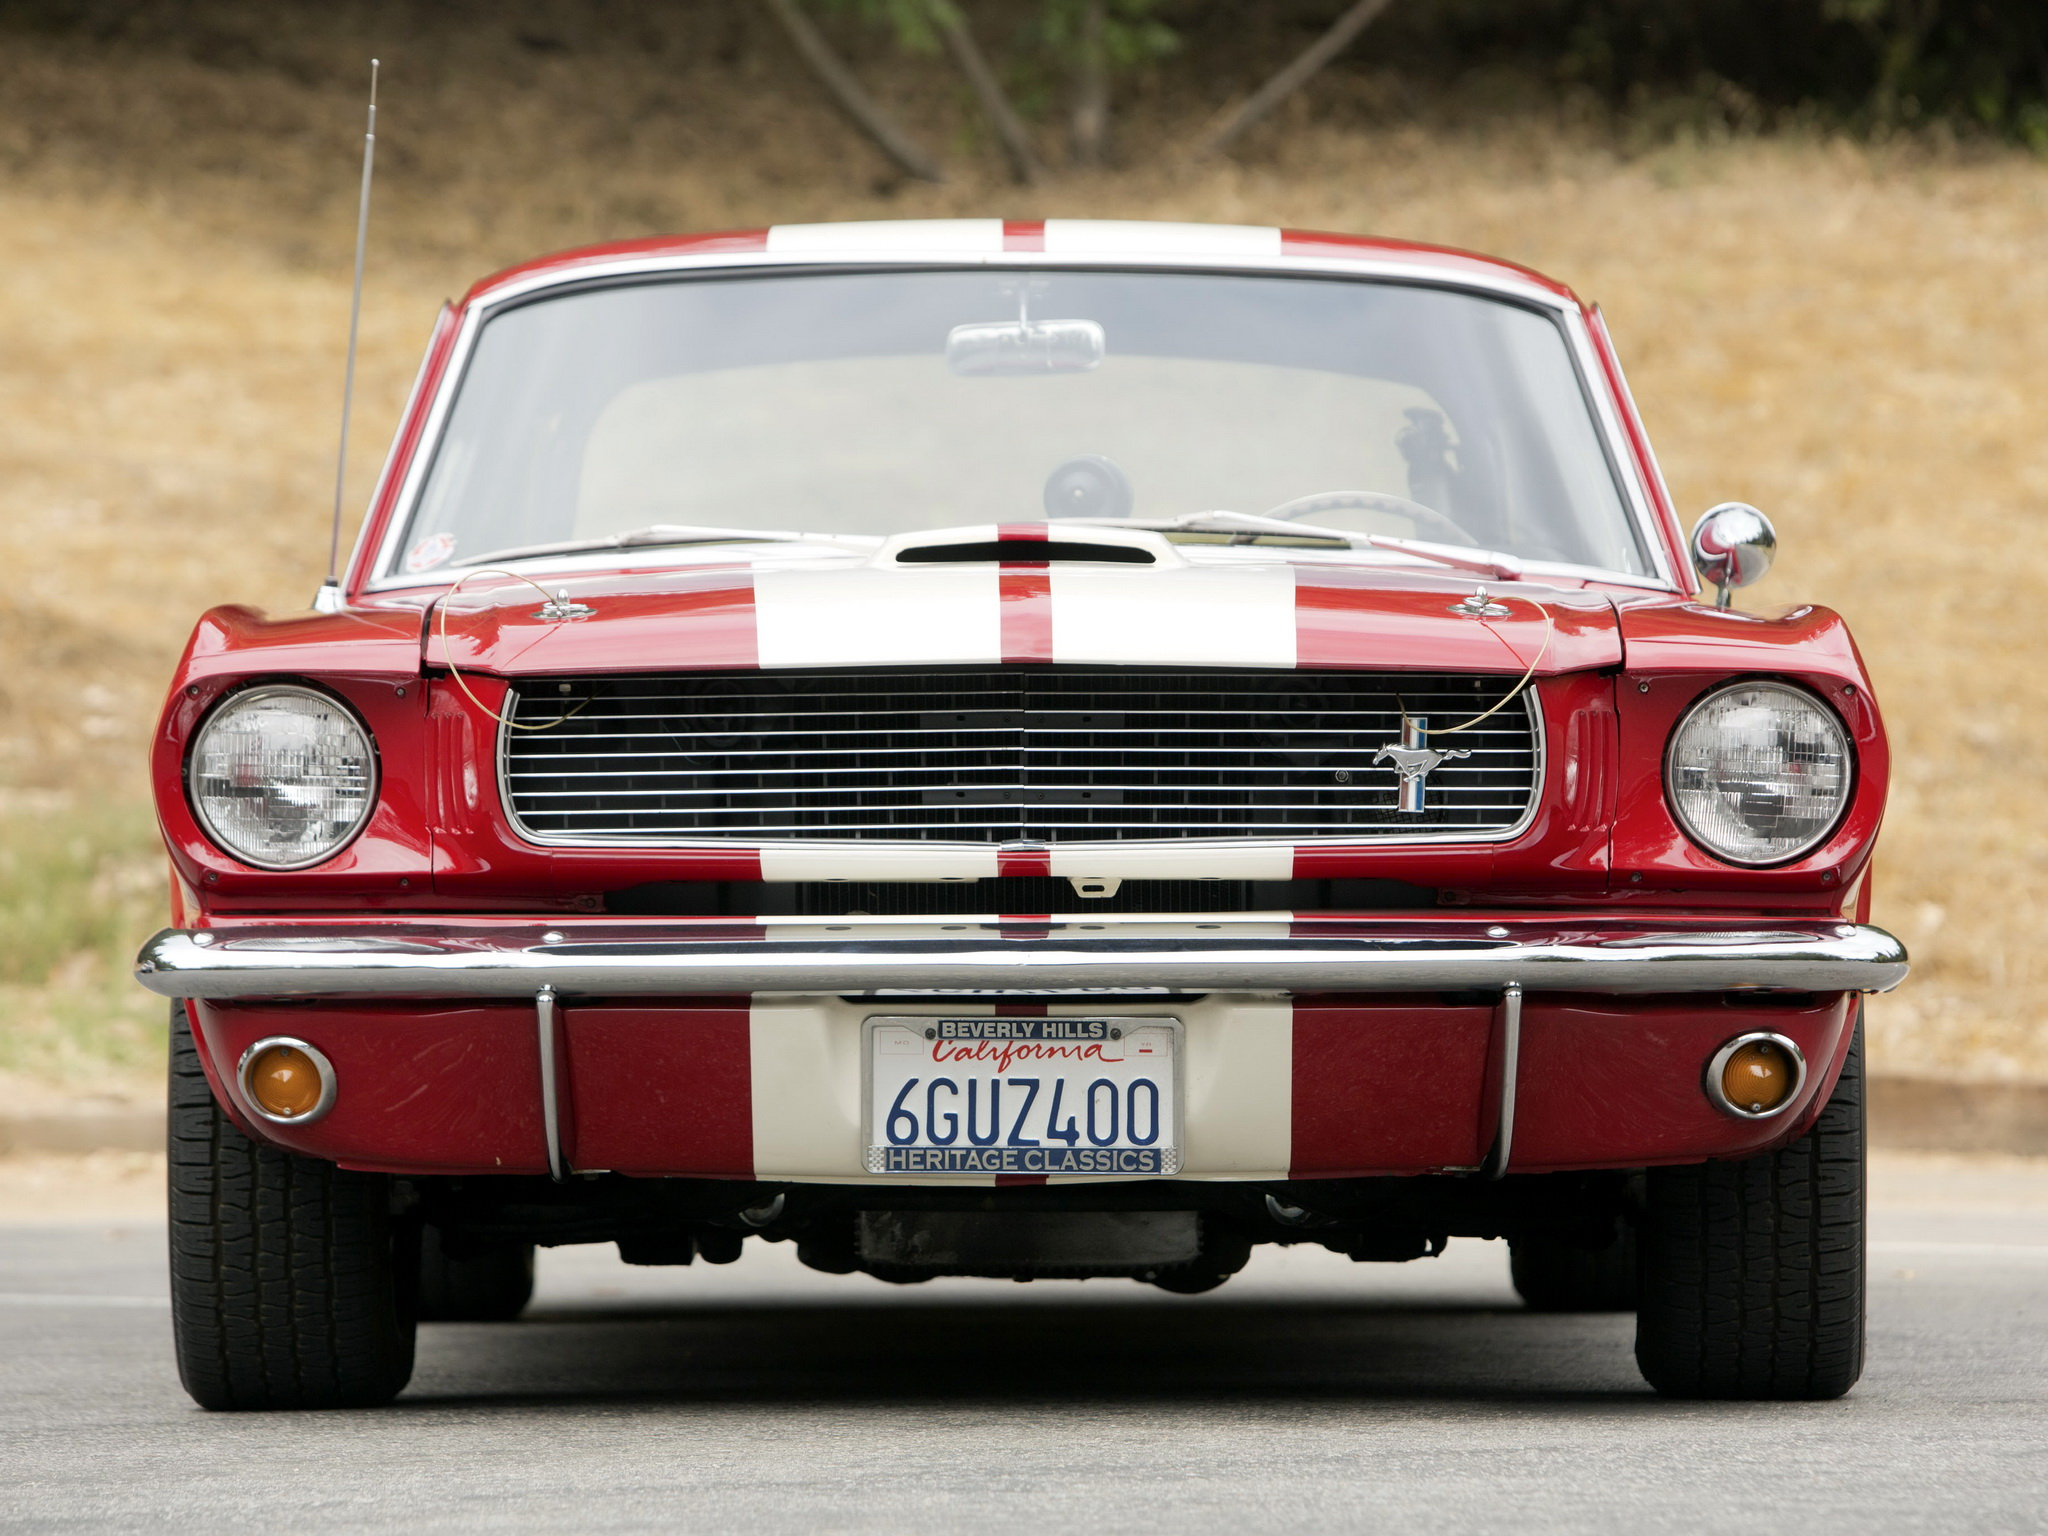 Ford F 350 Shelby >> 1966 Shelby GT350 ford mustang classic mustang muscle kd wallpaper | 2048x1536 | 164645 ...